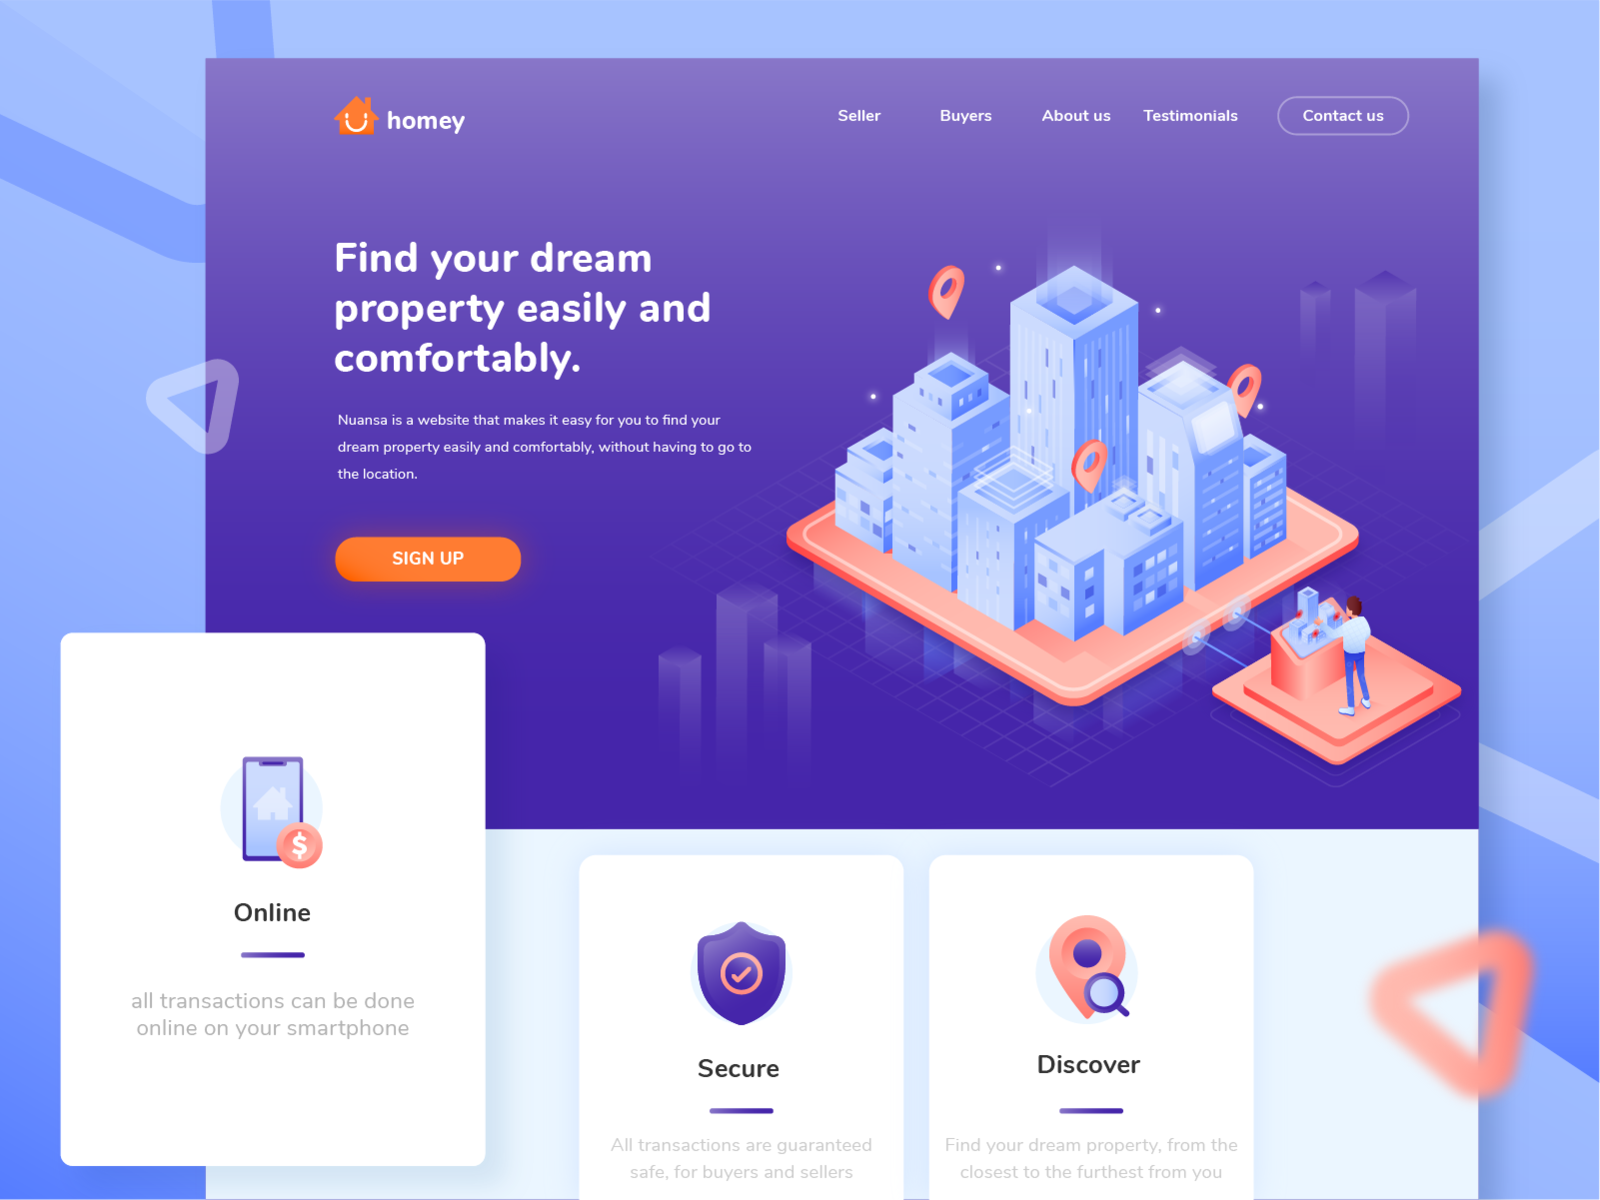 Hero Landing page isometric for real estate clean landign page header web property home real estate vector section ui isometric design isometric marketing hero flat peoples illustration noansa design business